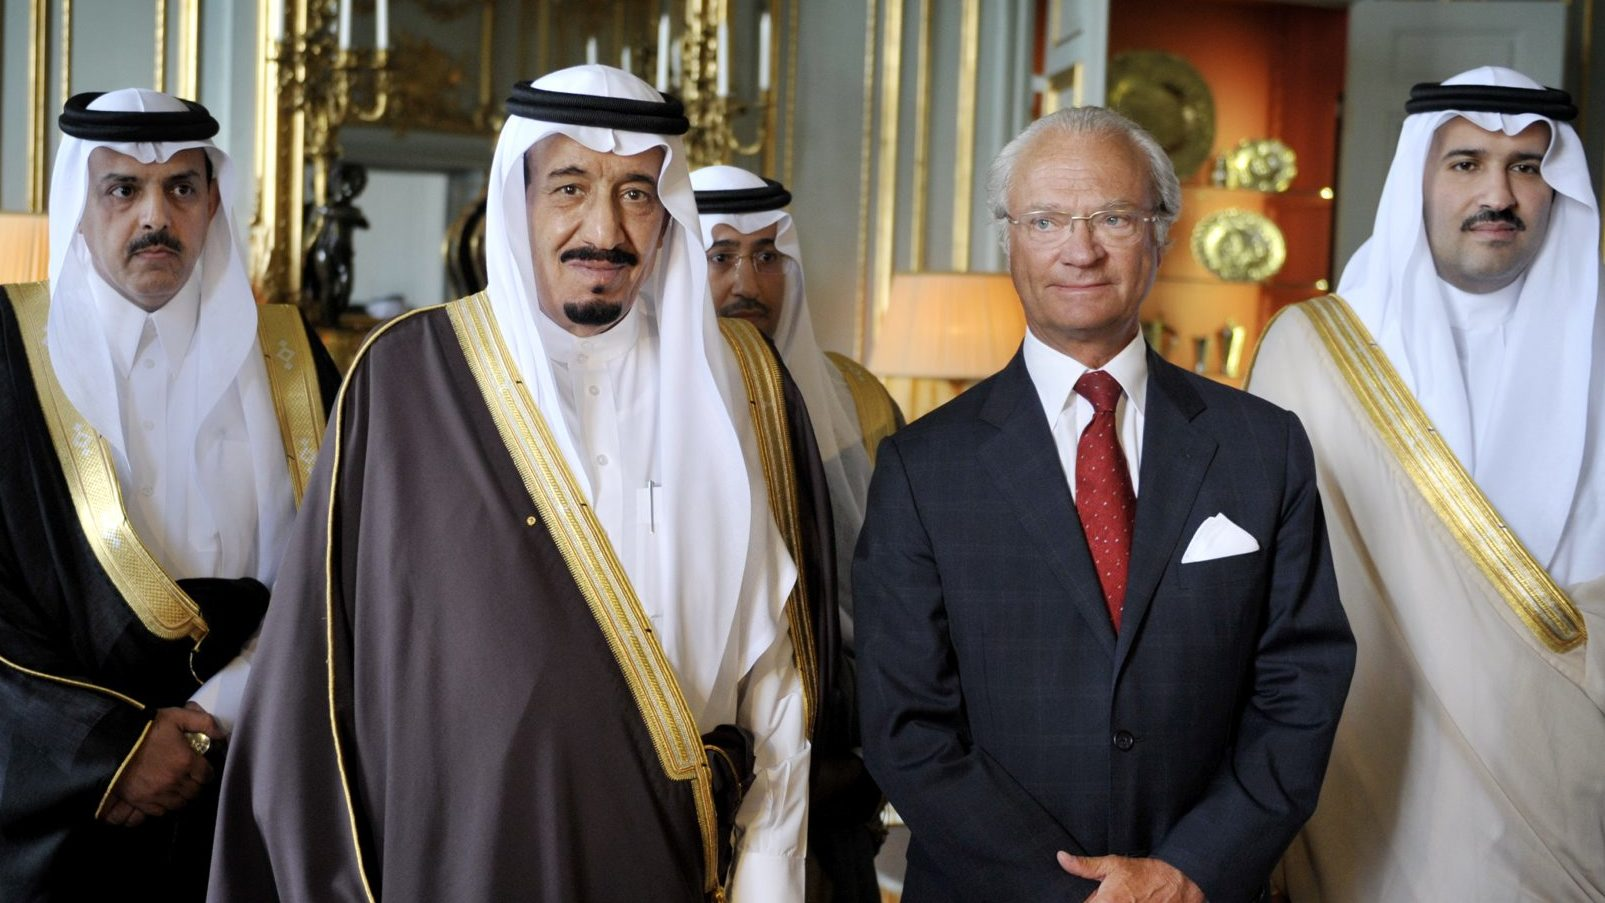 Prince Salman bin Abdul Aziz Al Saud, 2nd left, of Saudi Arabia, and King Carl Gustaf, 3rd left, of Sweden pose for photographers at an audience at the Royal Palace, Stockholm, Saturday, June 28, 2008. Prince Salman, Governor of Riyadh is in Sweden for a three-day official visit to Stockholm invited by the Governor of Stockholm. Men in background are unidentified.